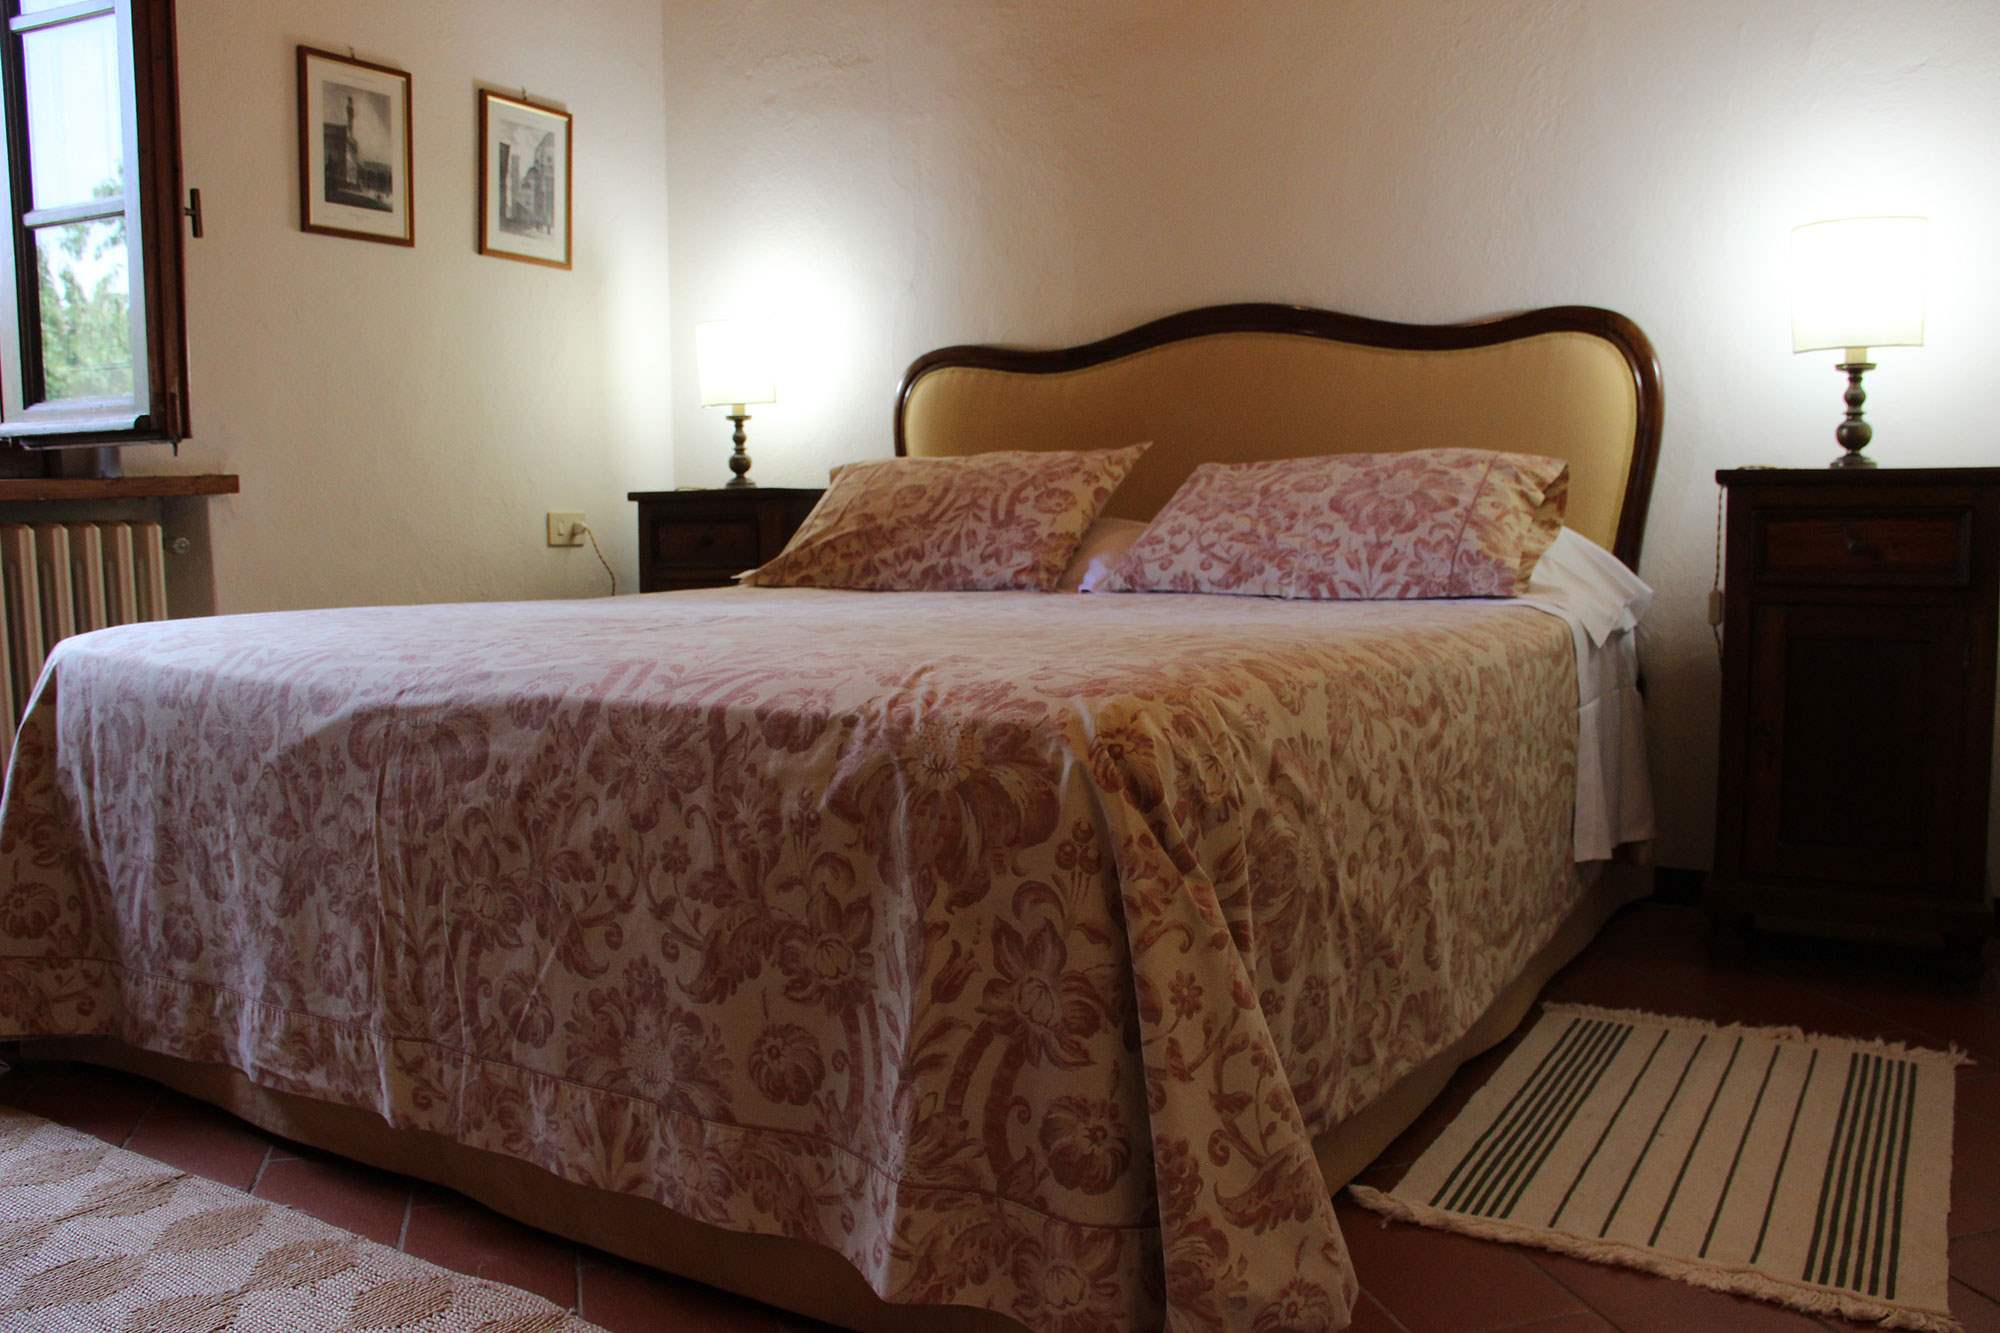 Casa Ferruzzi 2, 3 bedroom apartment in Chianti & Countryside, Tuscany Photo #21